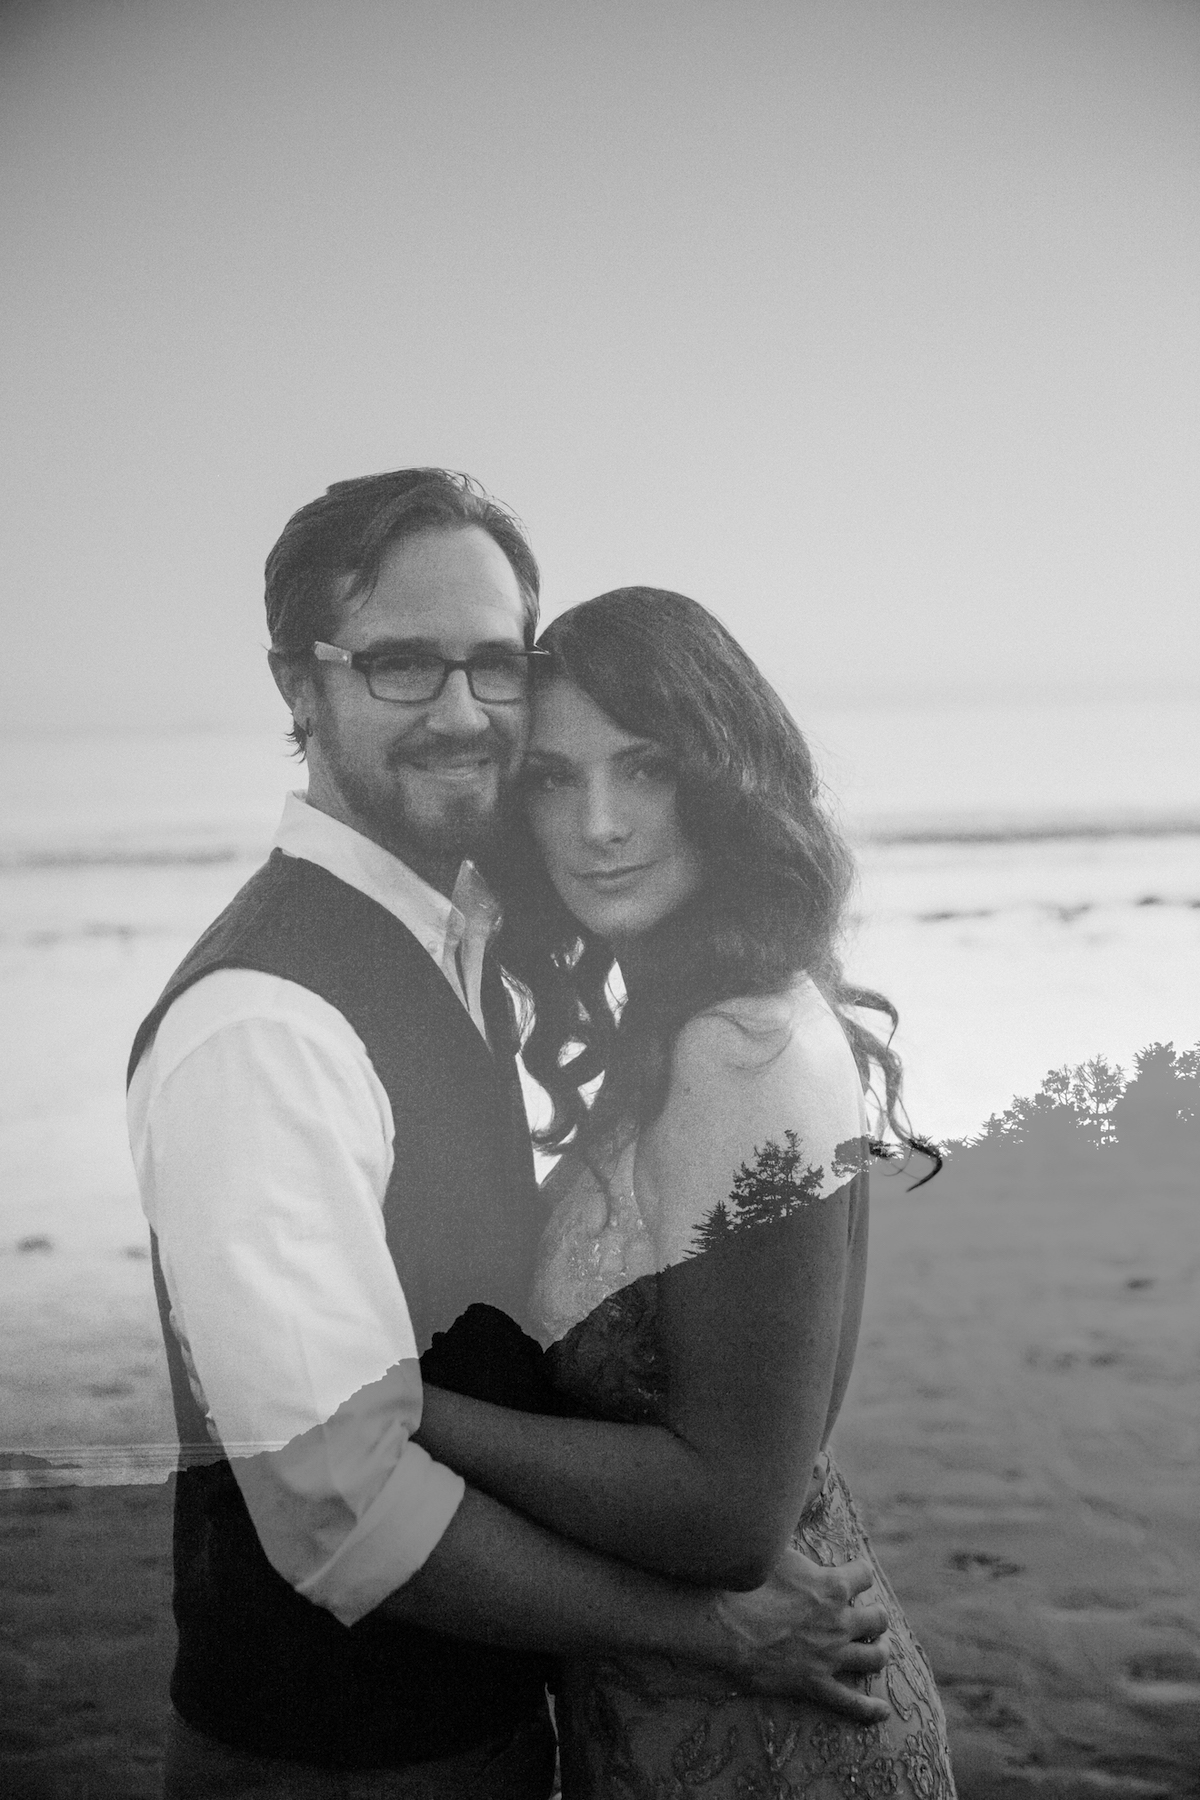 pelican-inn-muir-beach-overlook-wedding-5833B.jpg